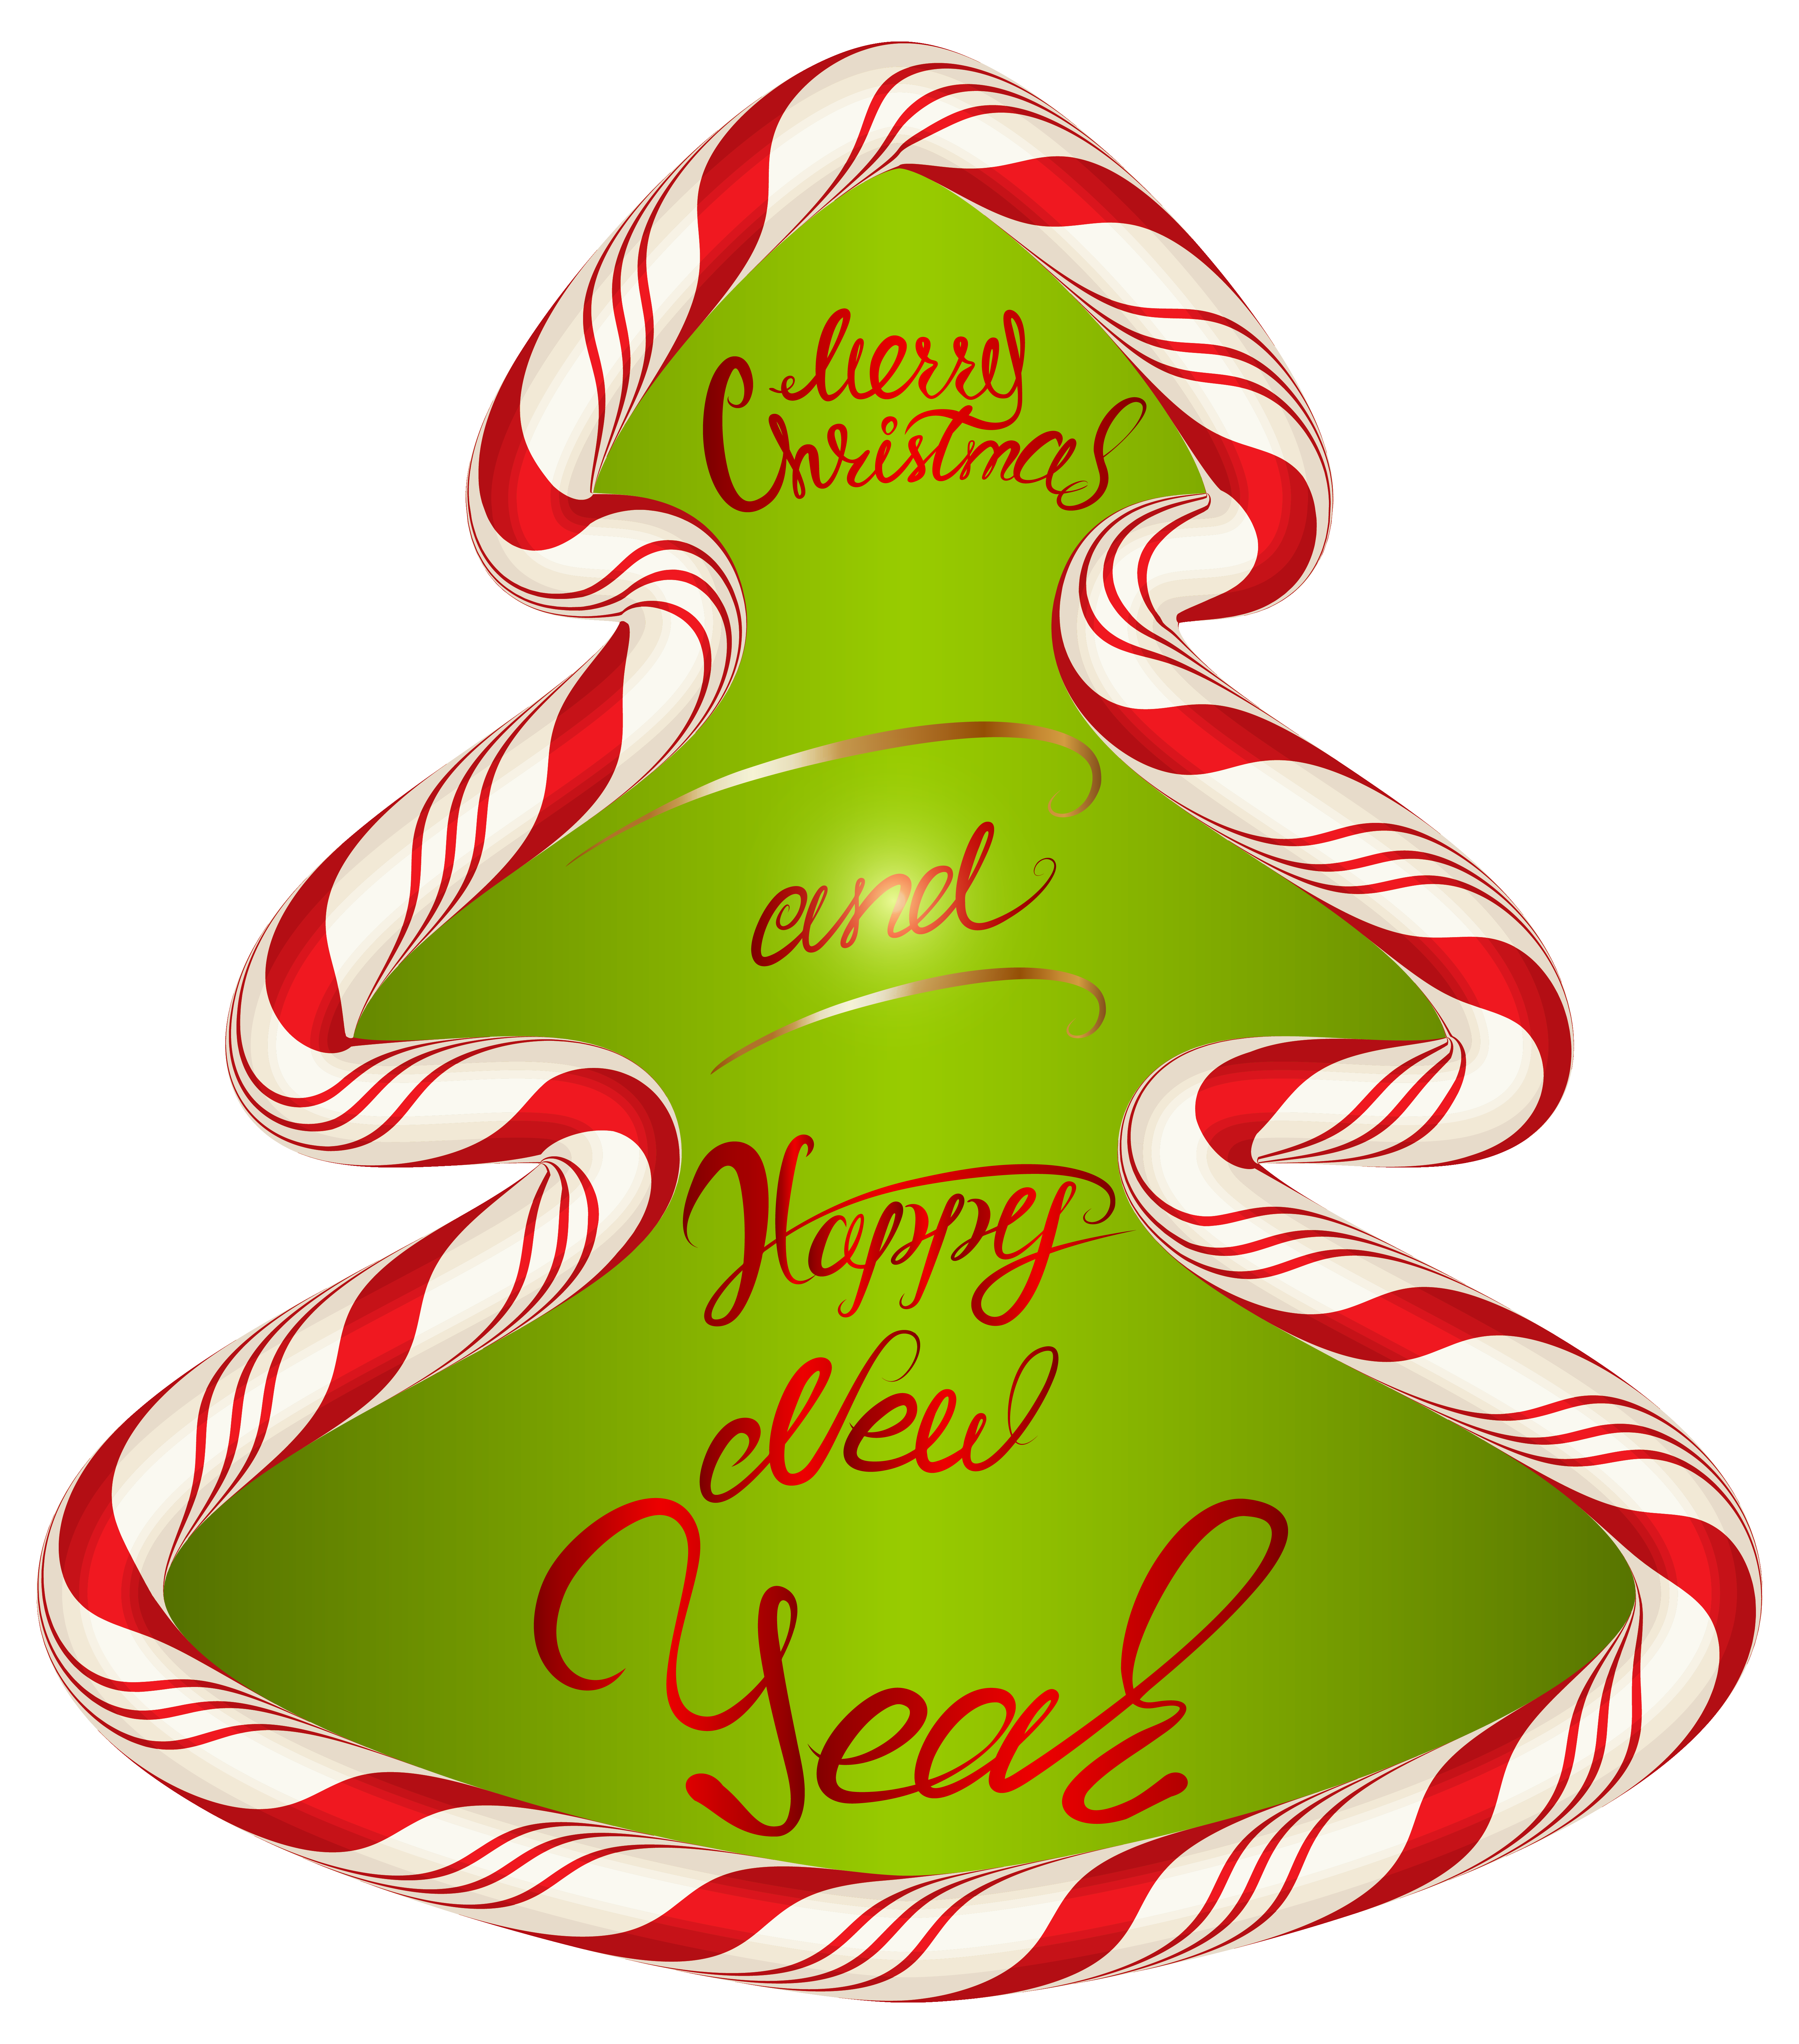 Ornament clipart candy. Christmas tree png image